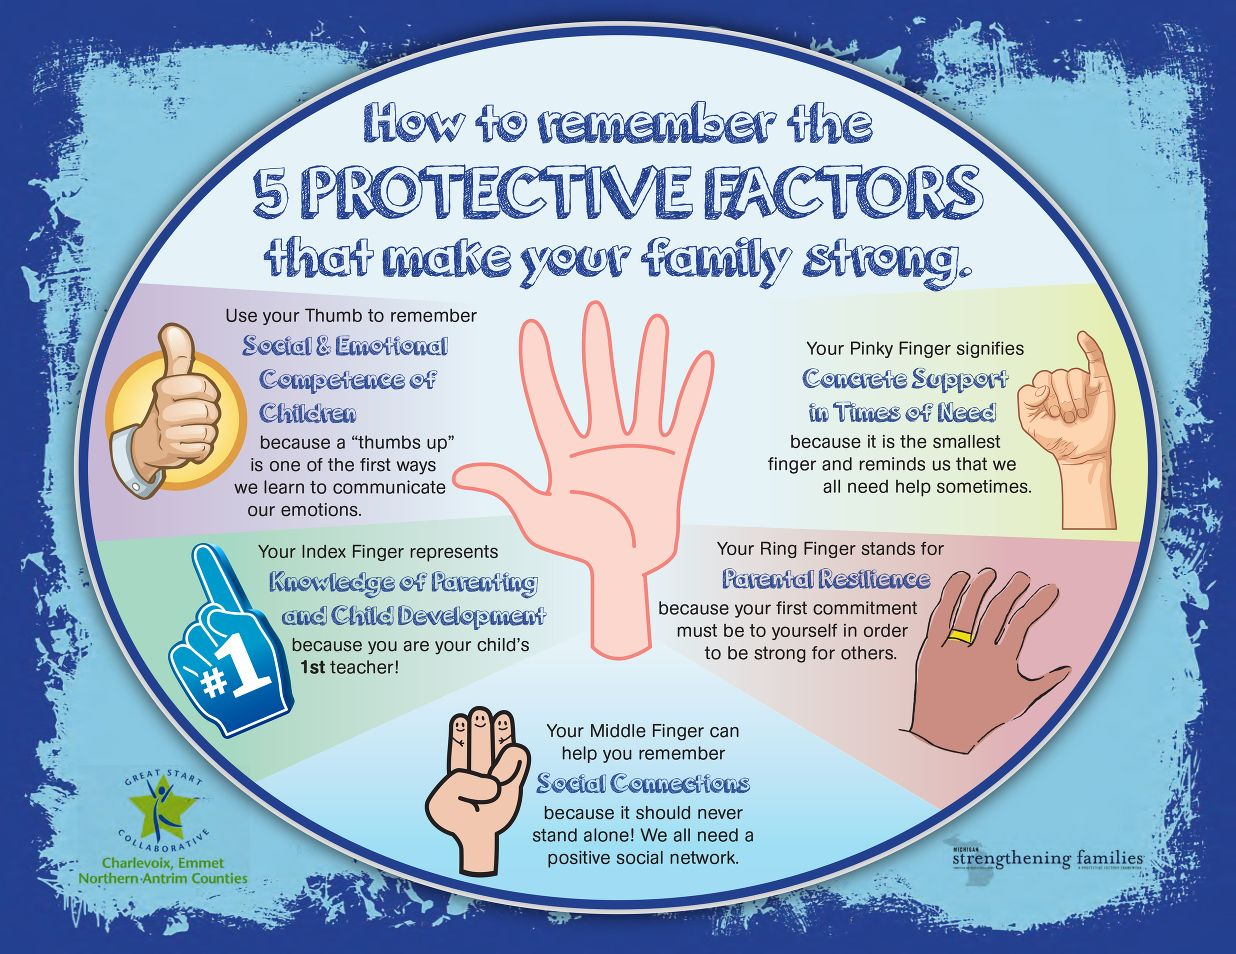 Use The 5 Protective Factors To Make Families Strong